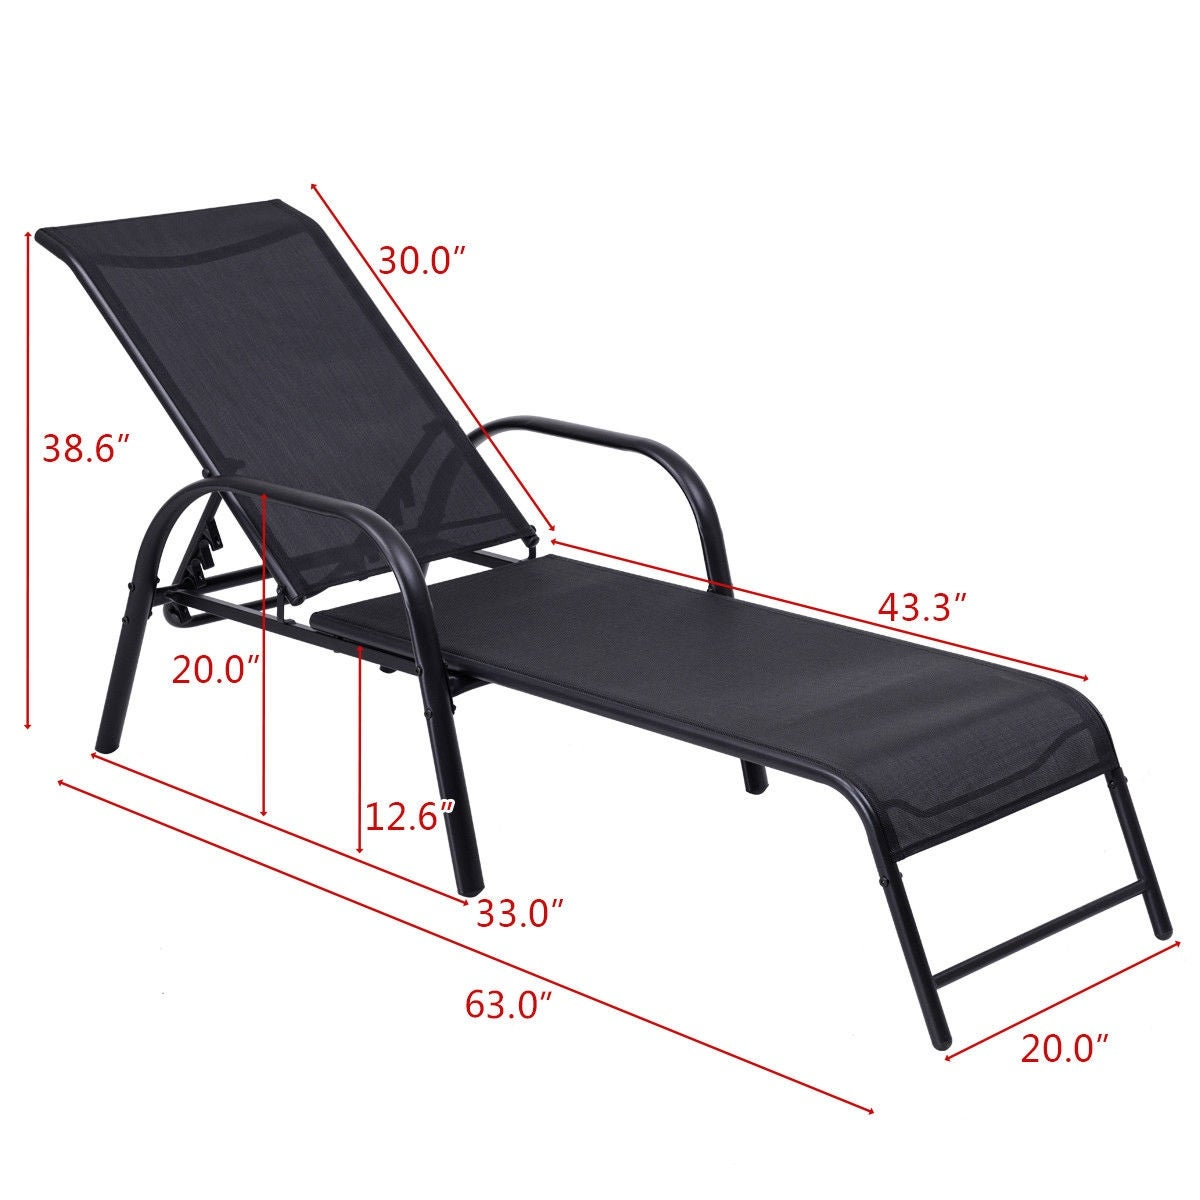 Costway Set Of 2 Patio Lounge Chairs Sling Chaise Lounges Recliner  Adjustable Back   Free Shipping Today   Overstock   25581647